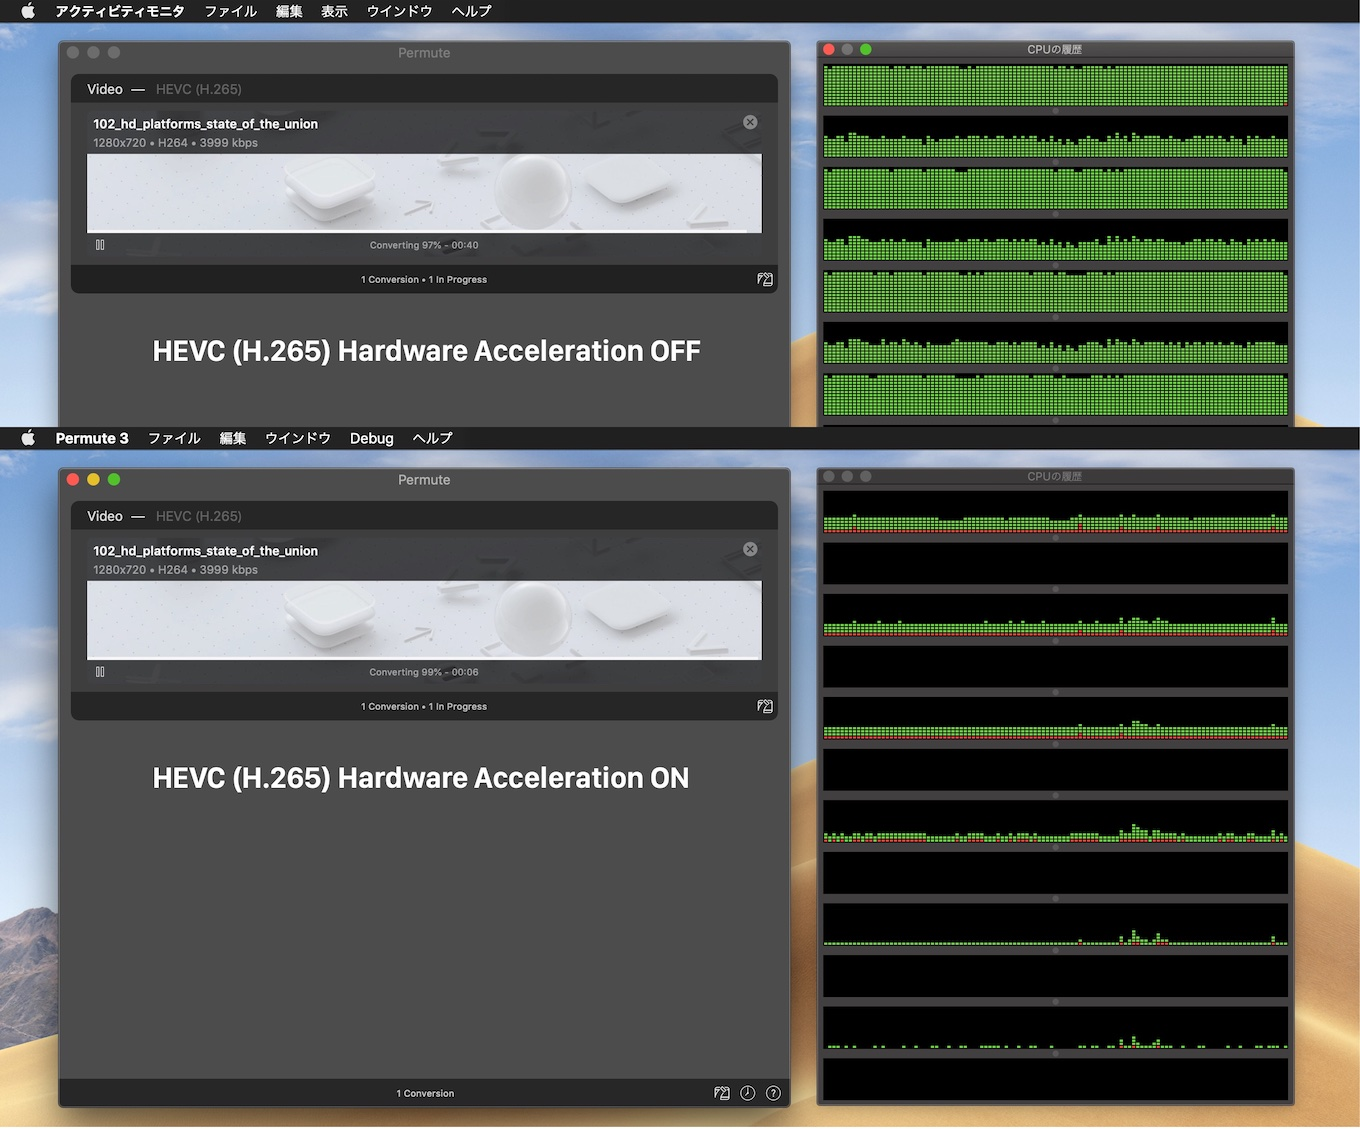 Permute HEVC (H.265) Hardware Acceleration